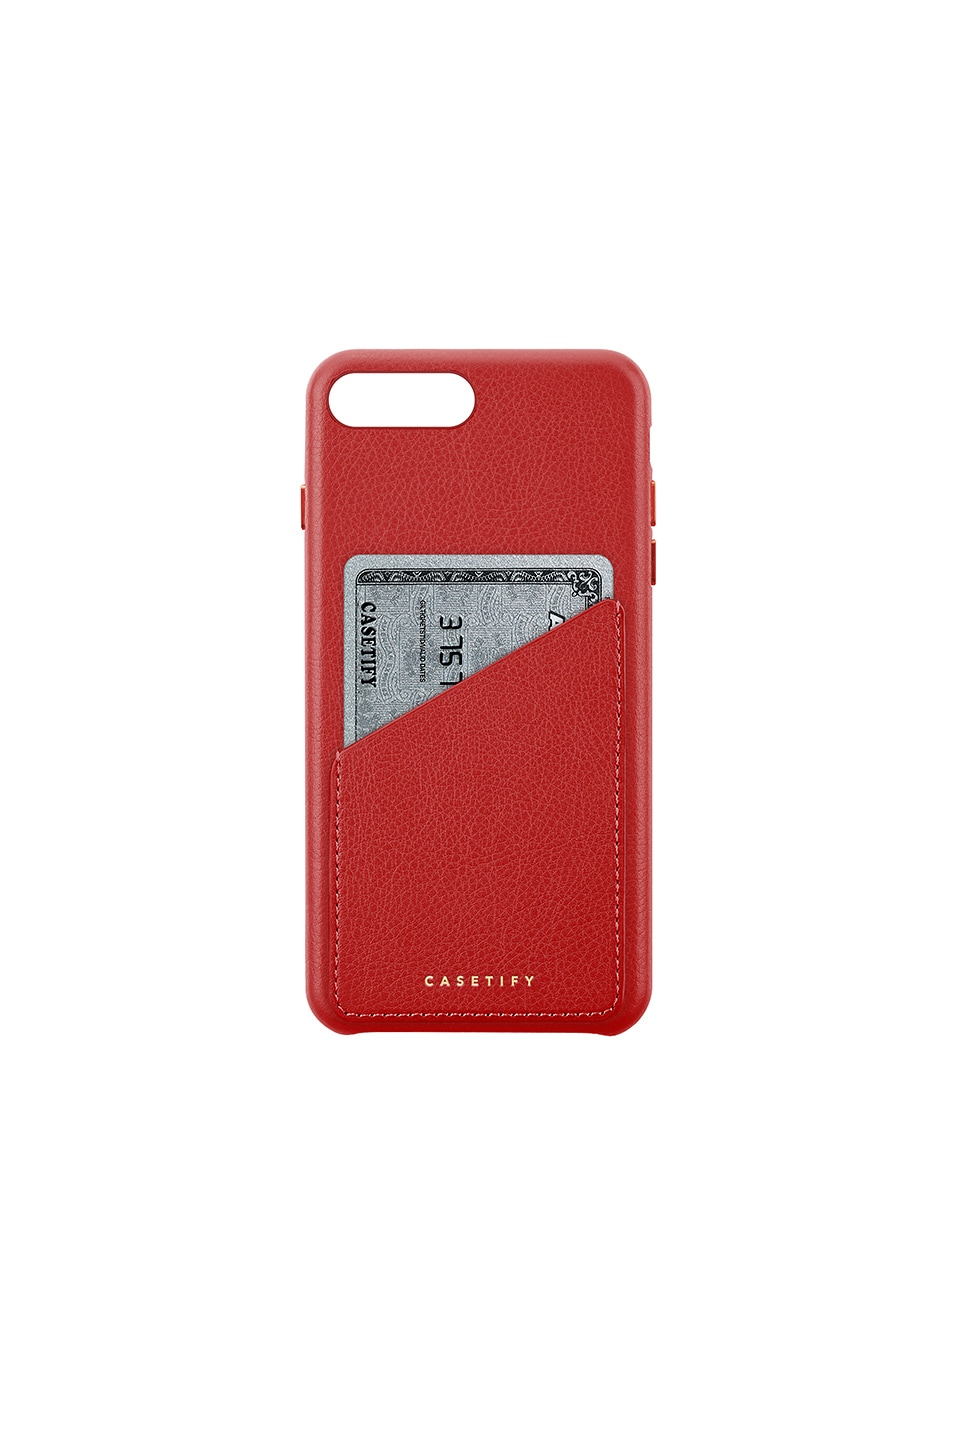 Leather Card Iphone 6/7/8 Plus Case in Red